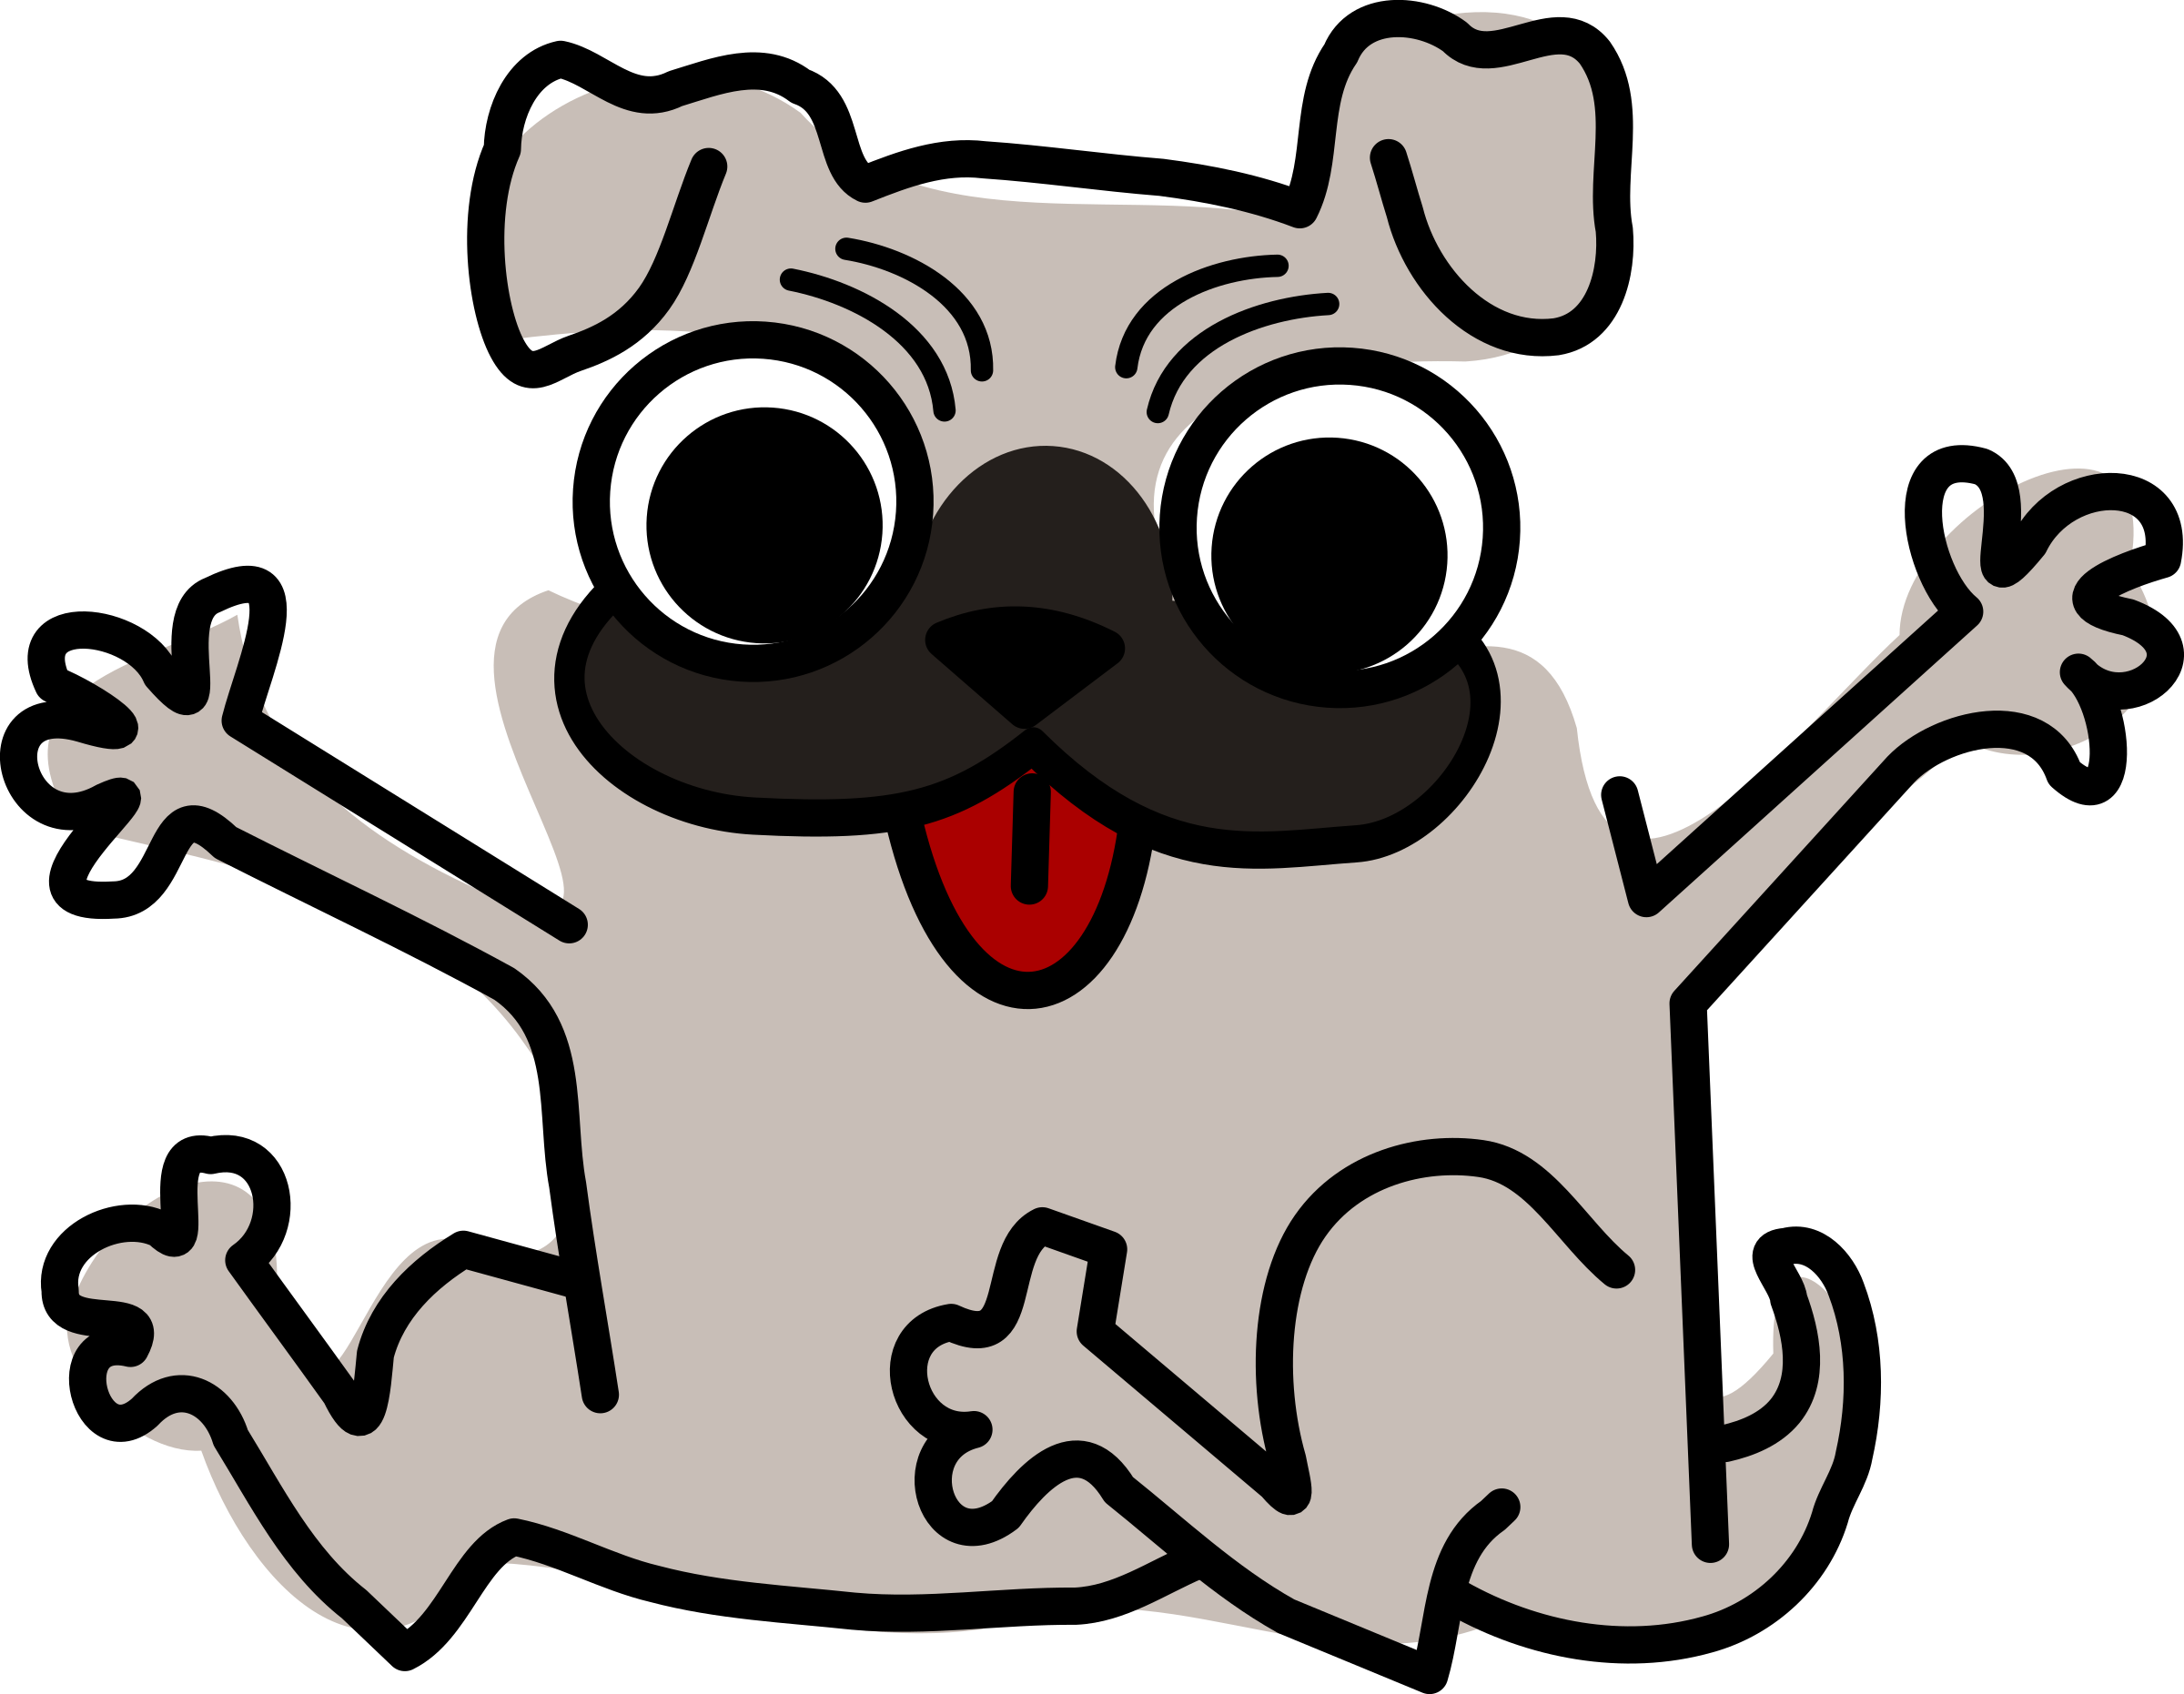 graphic royalty free library Big image png. Mystery clipart dog.